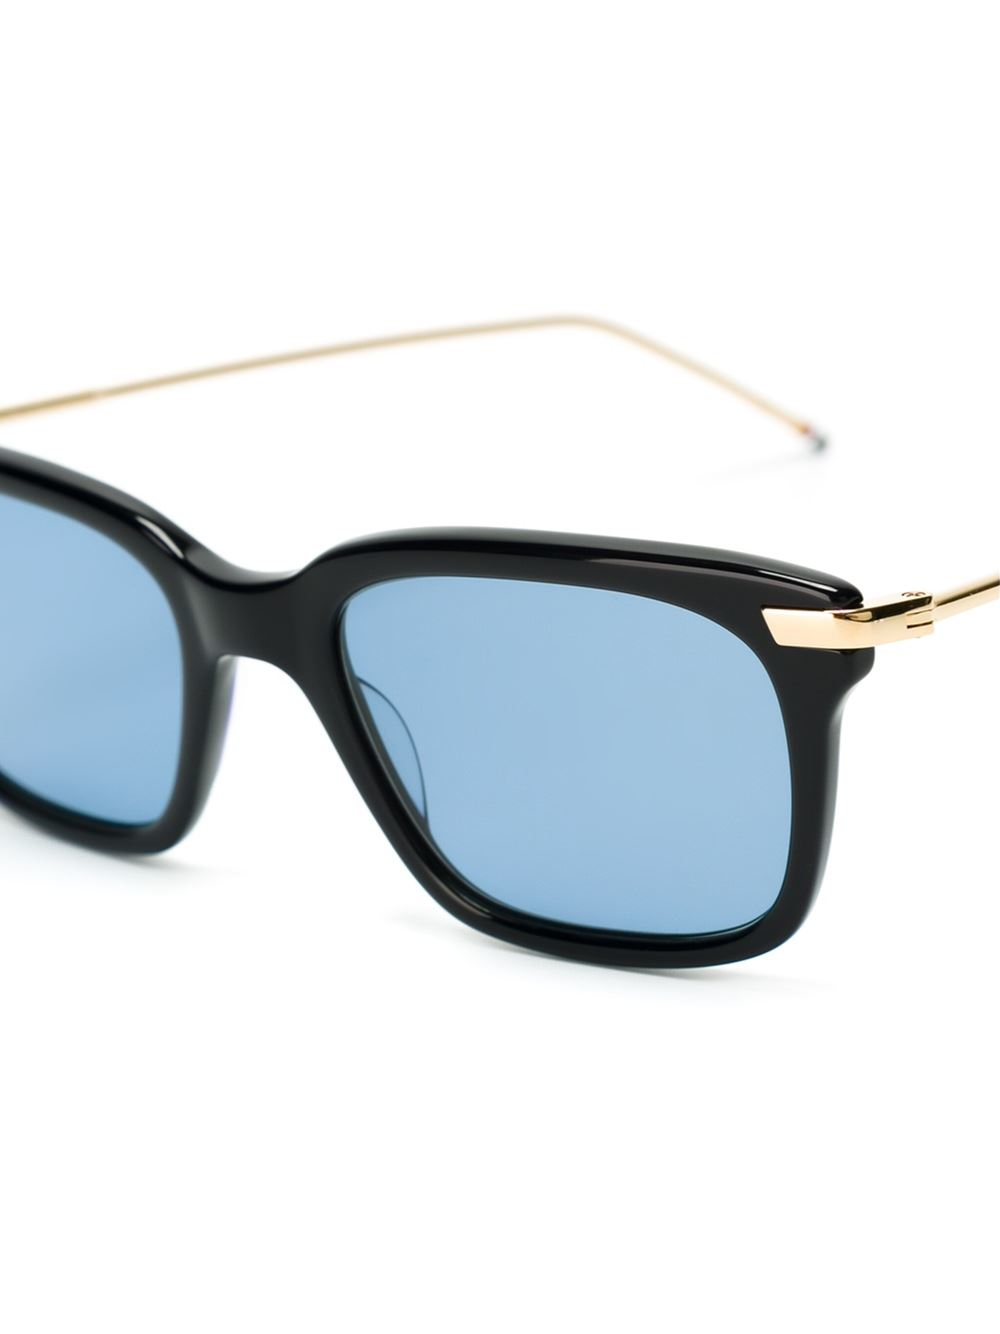 Square Gold Frame Sunglasses : Thom browne Square Frame Sunglasses in Gold for Men ...